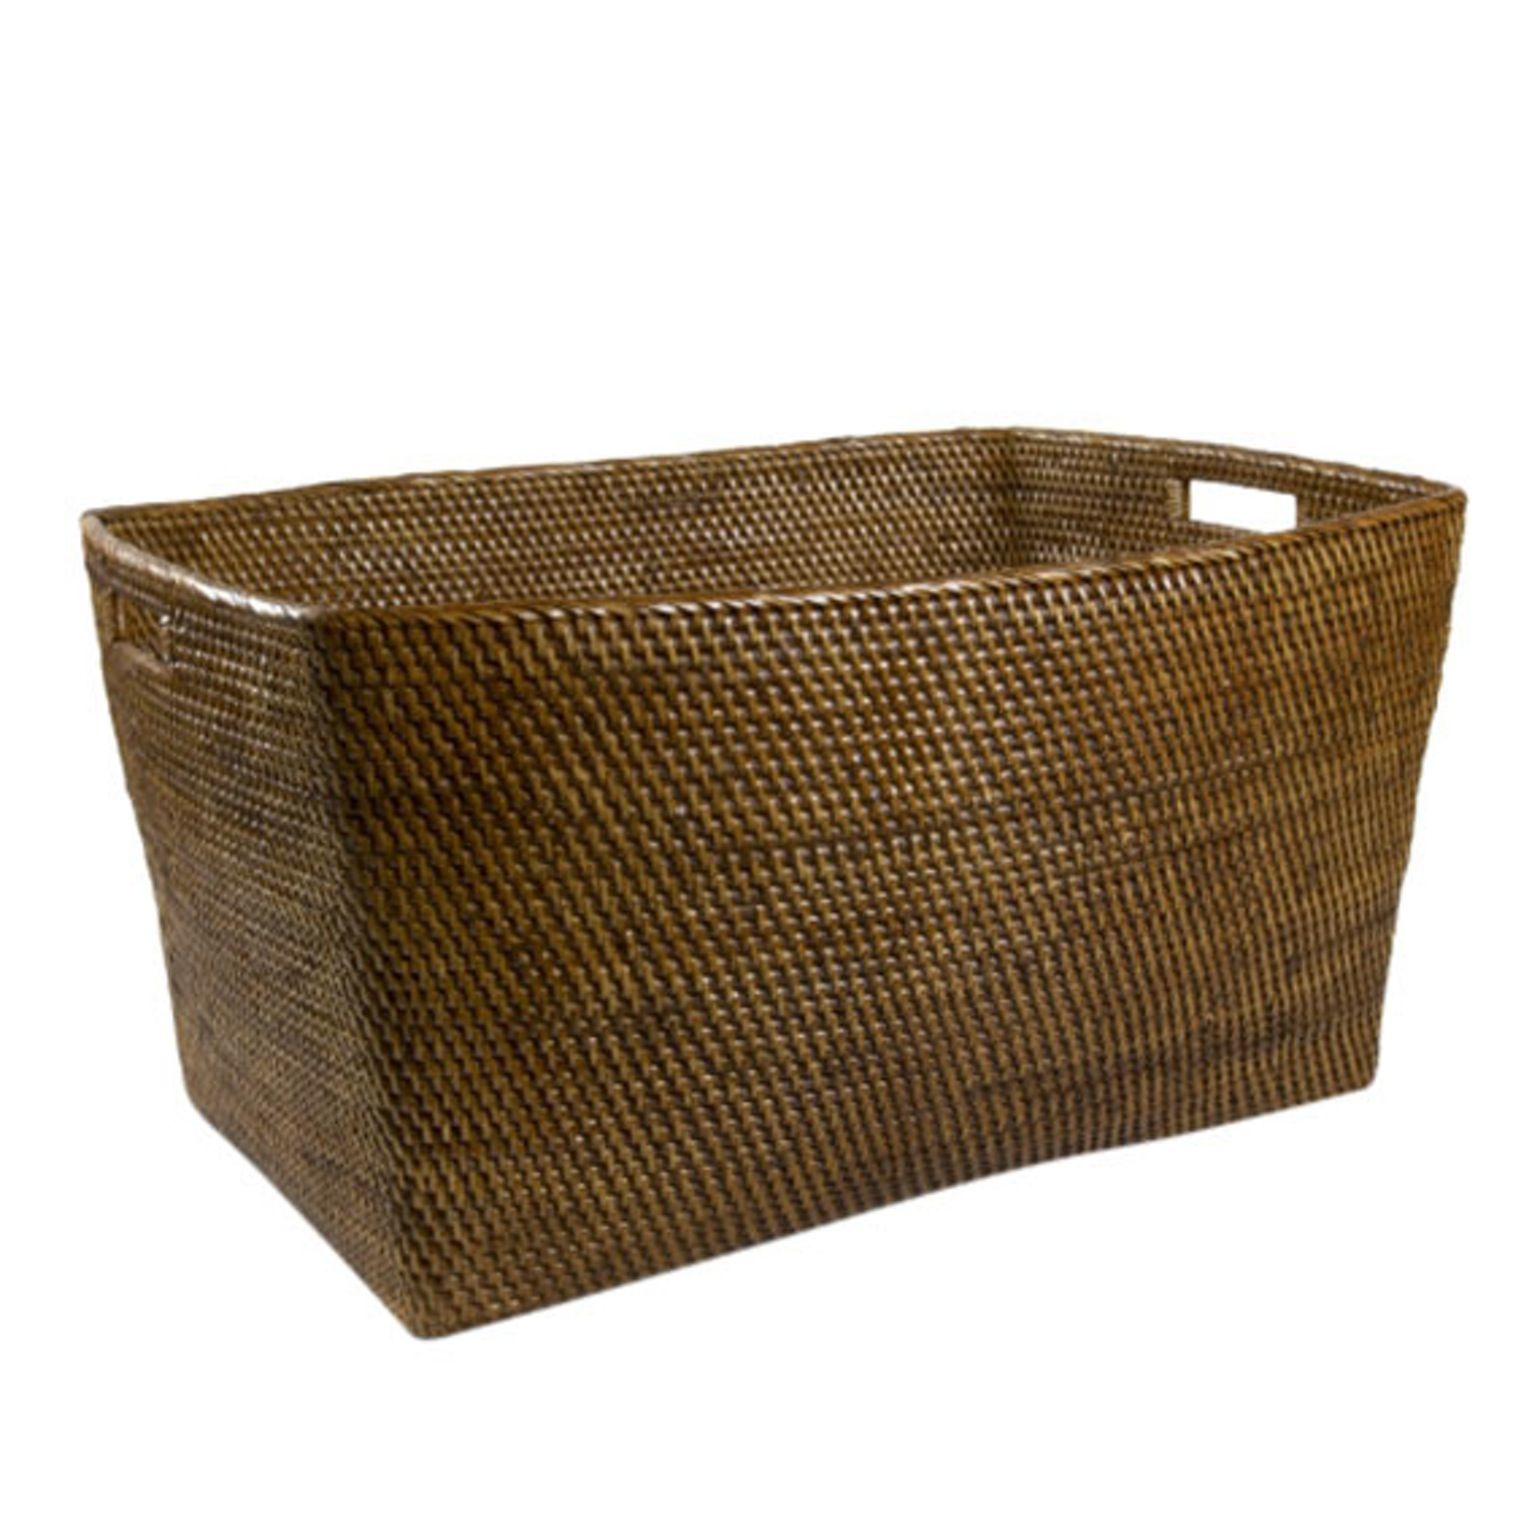 Exceptionnel Rattan Extra Large Rectangular Basket Transitional, Natural Material, Basket  By Waterworks